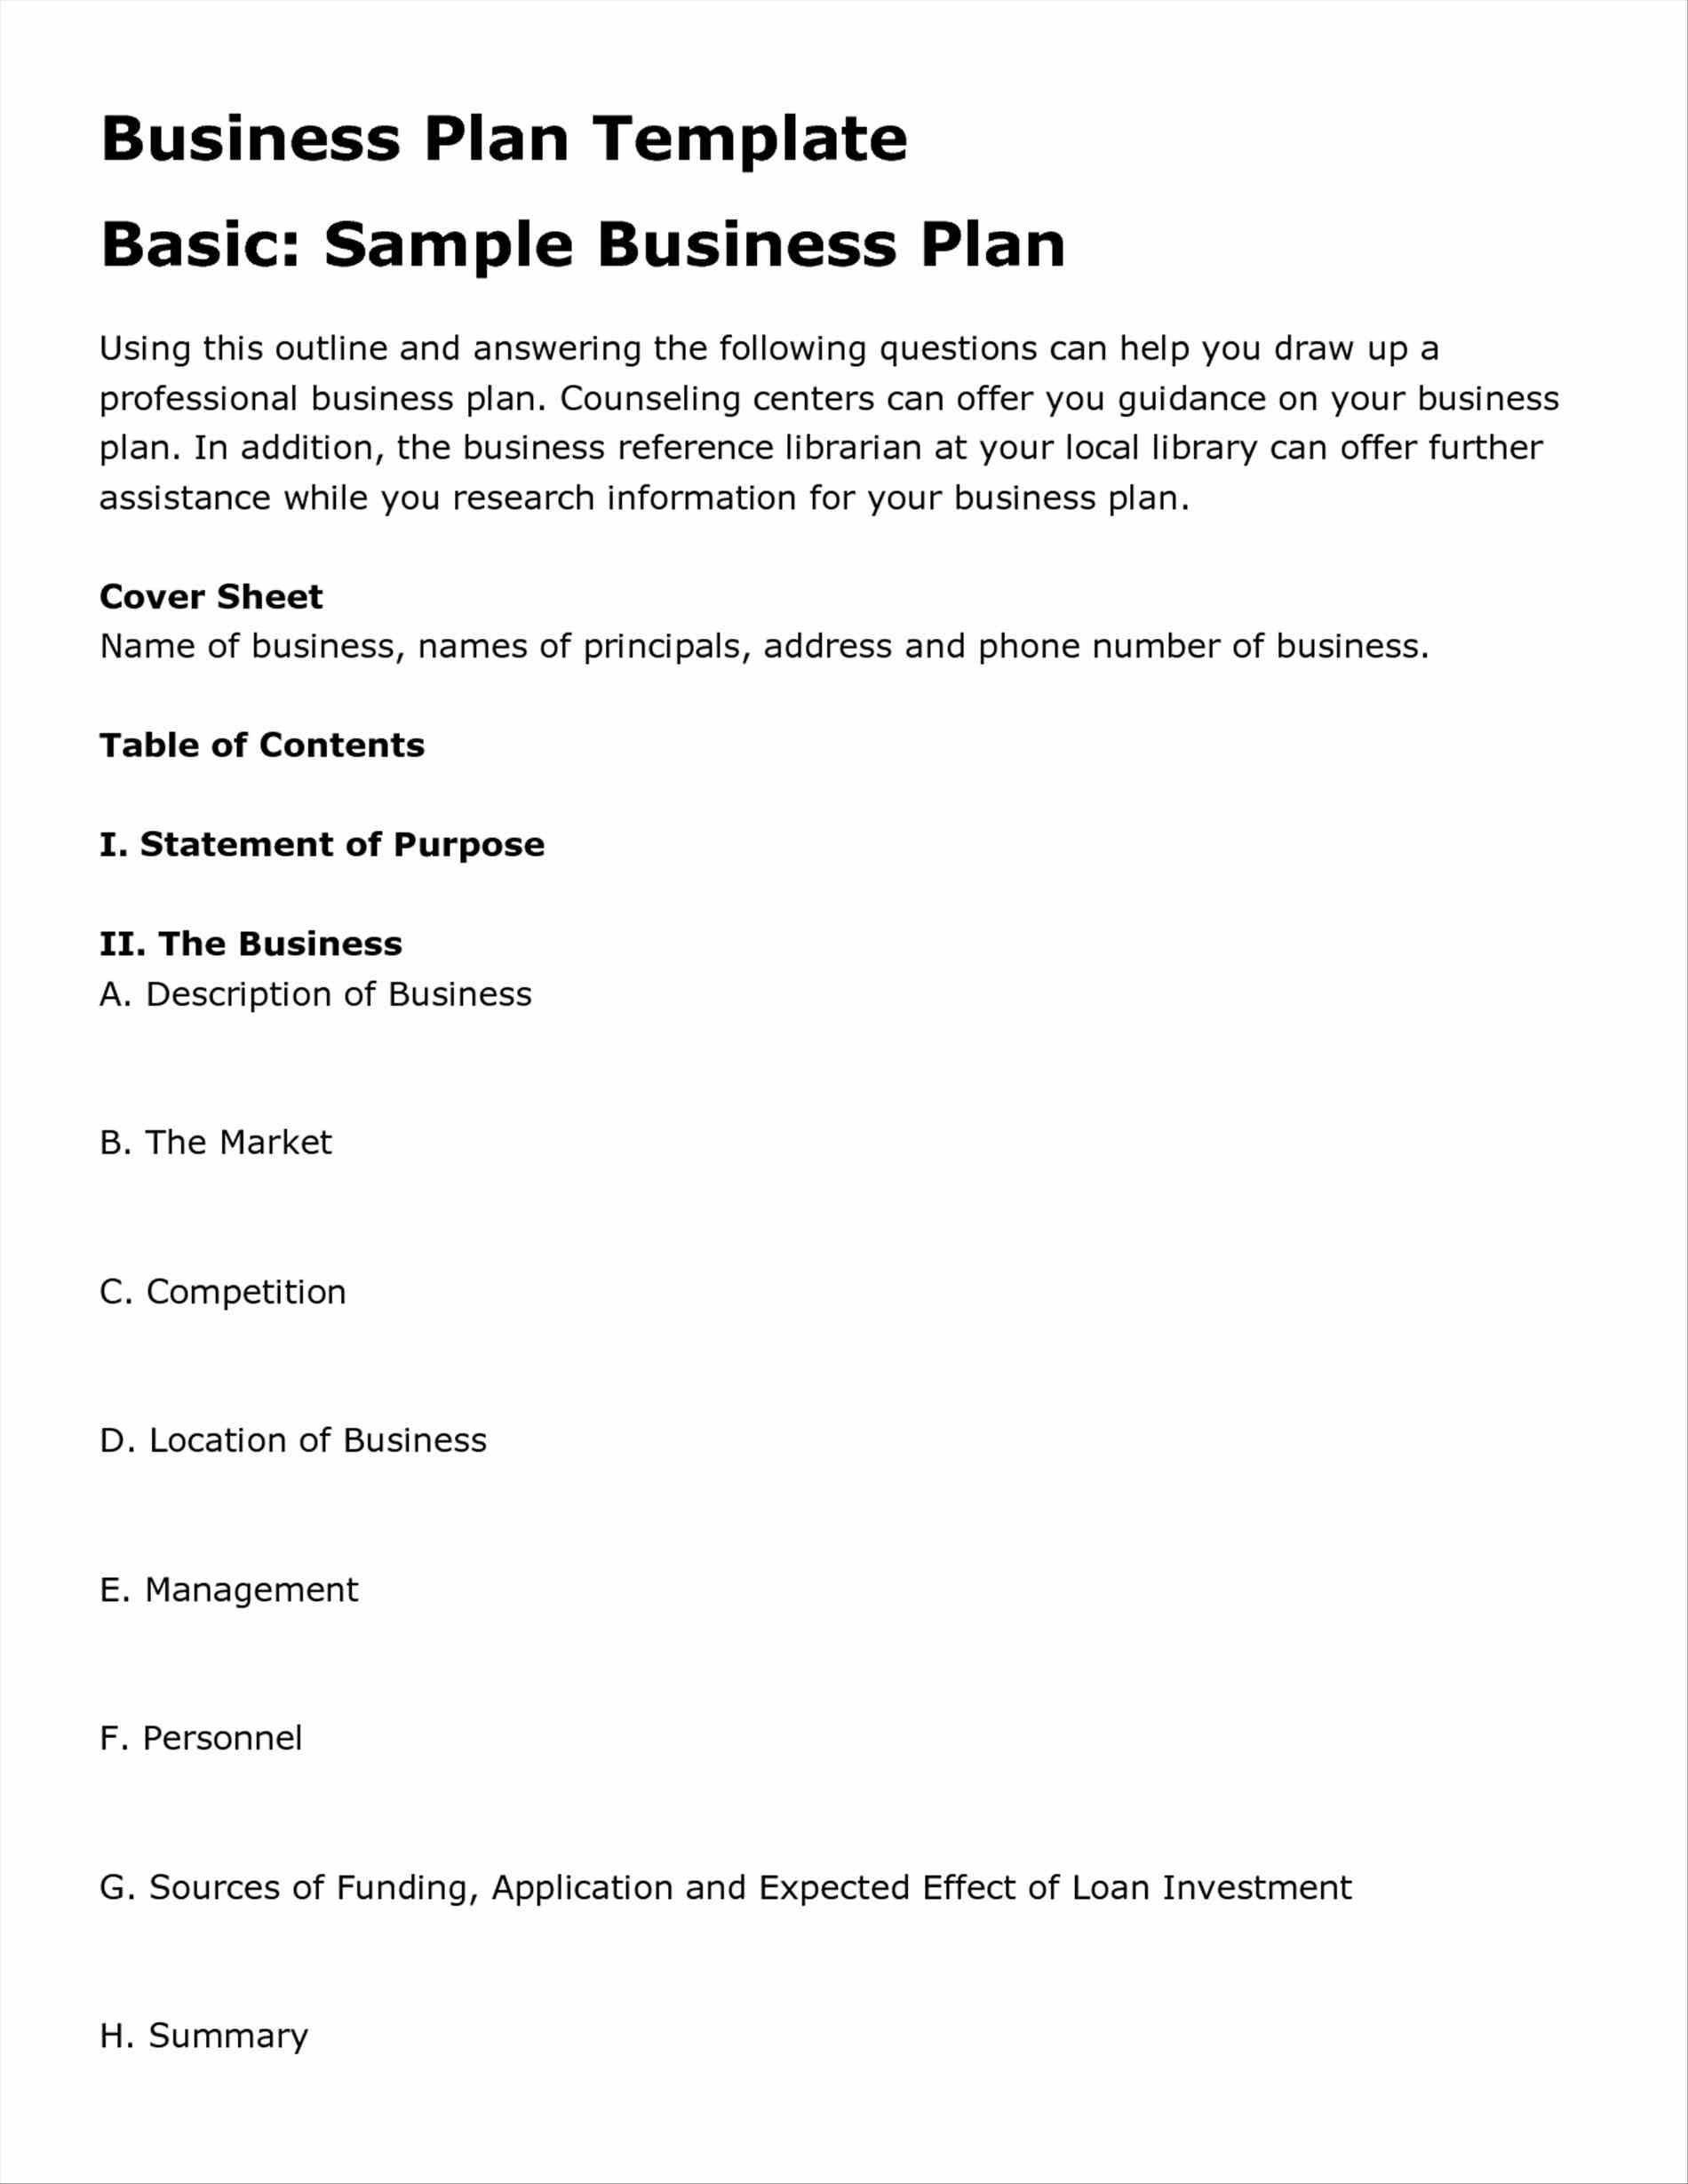 Business plan template restaurant templates in word excel pdf free business plan template restaurant templates in word excel pdf free cafe business plan template restaurant business plan templates in word excel cheaphphosting Gallery